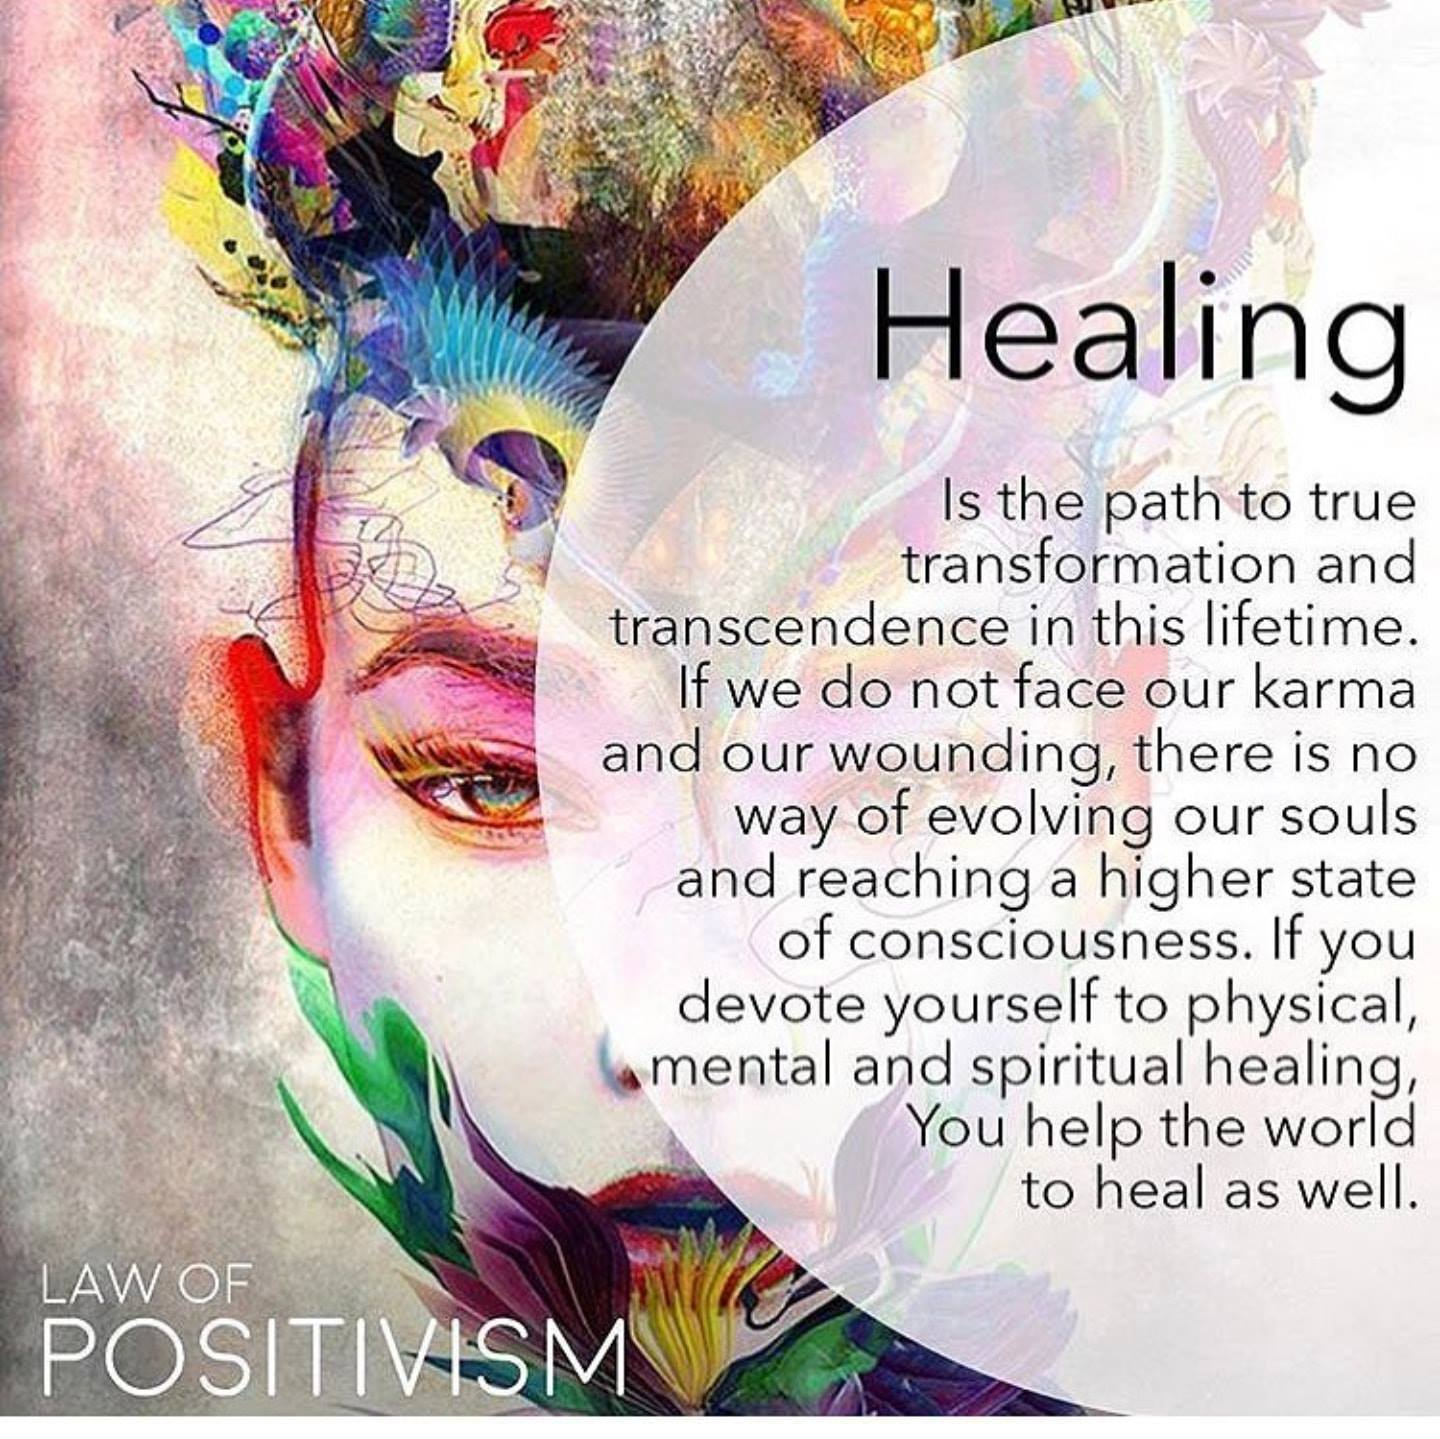 HEALING image credit Law of Positivism